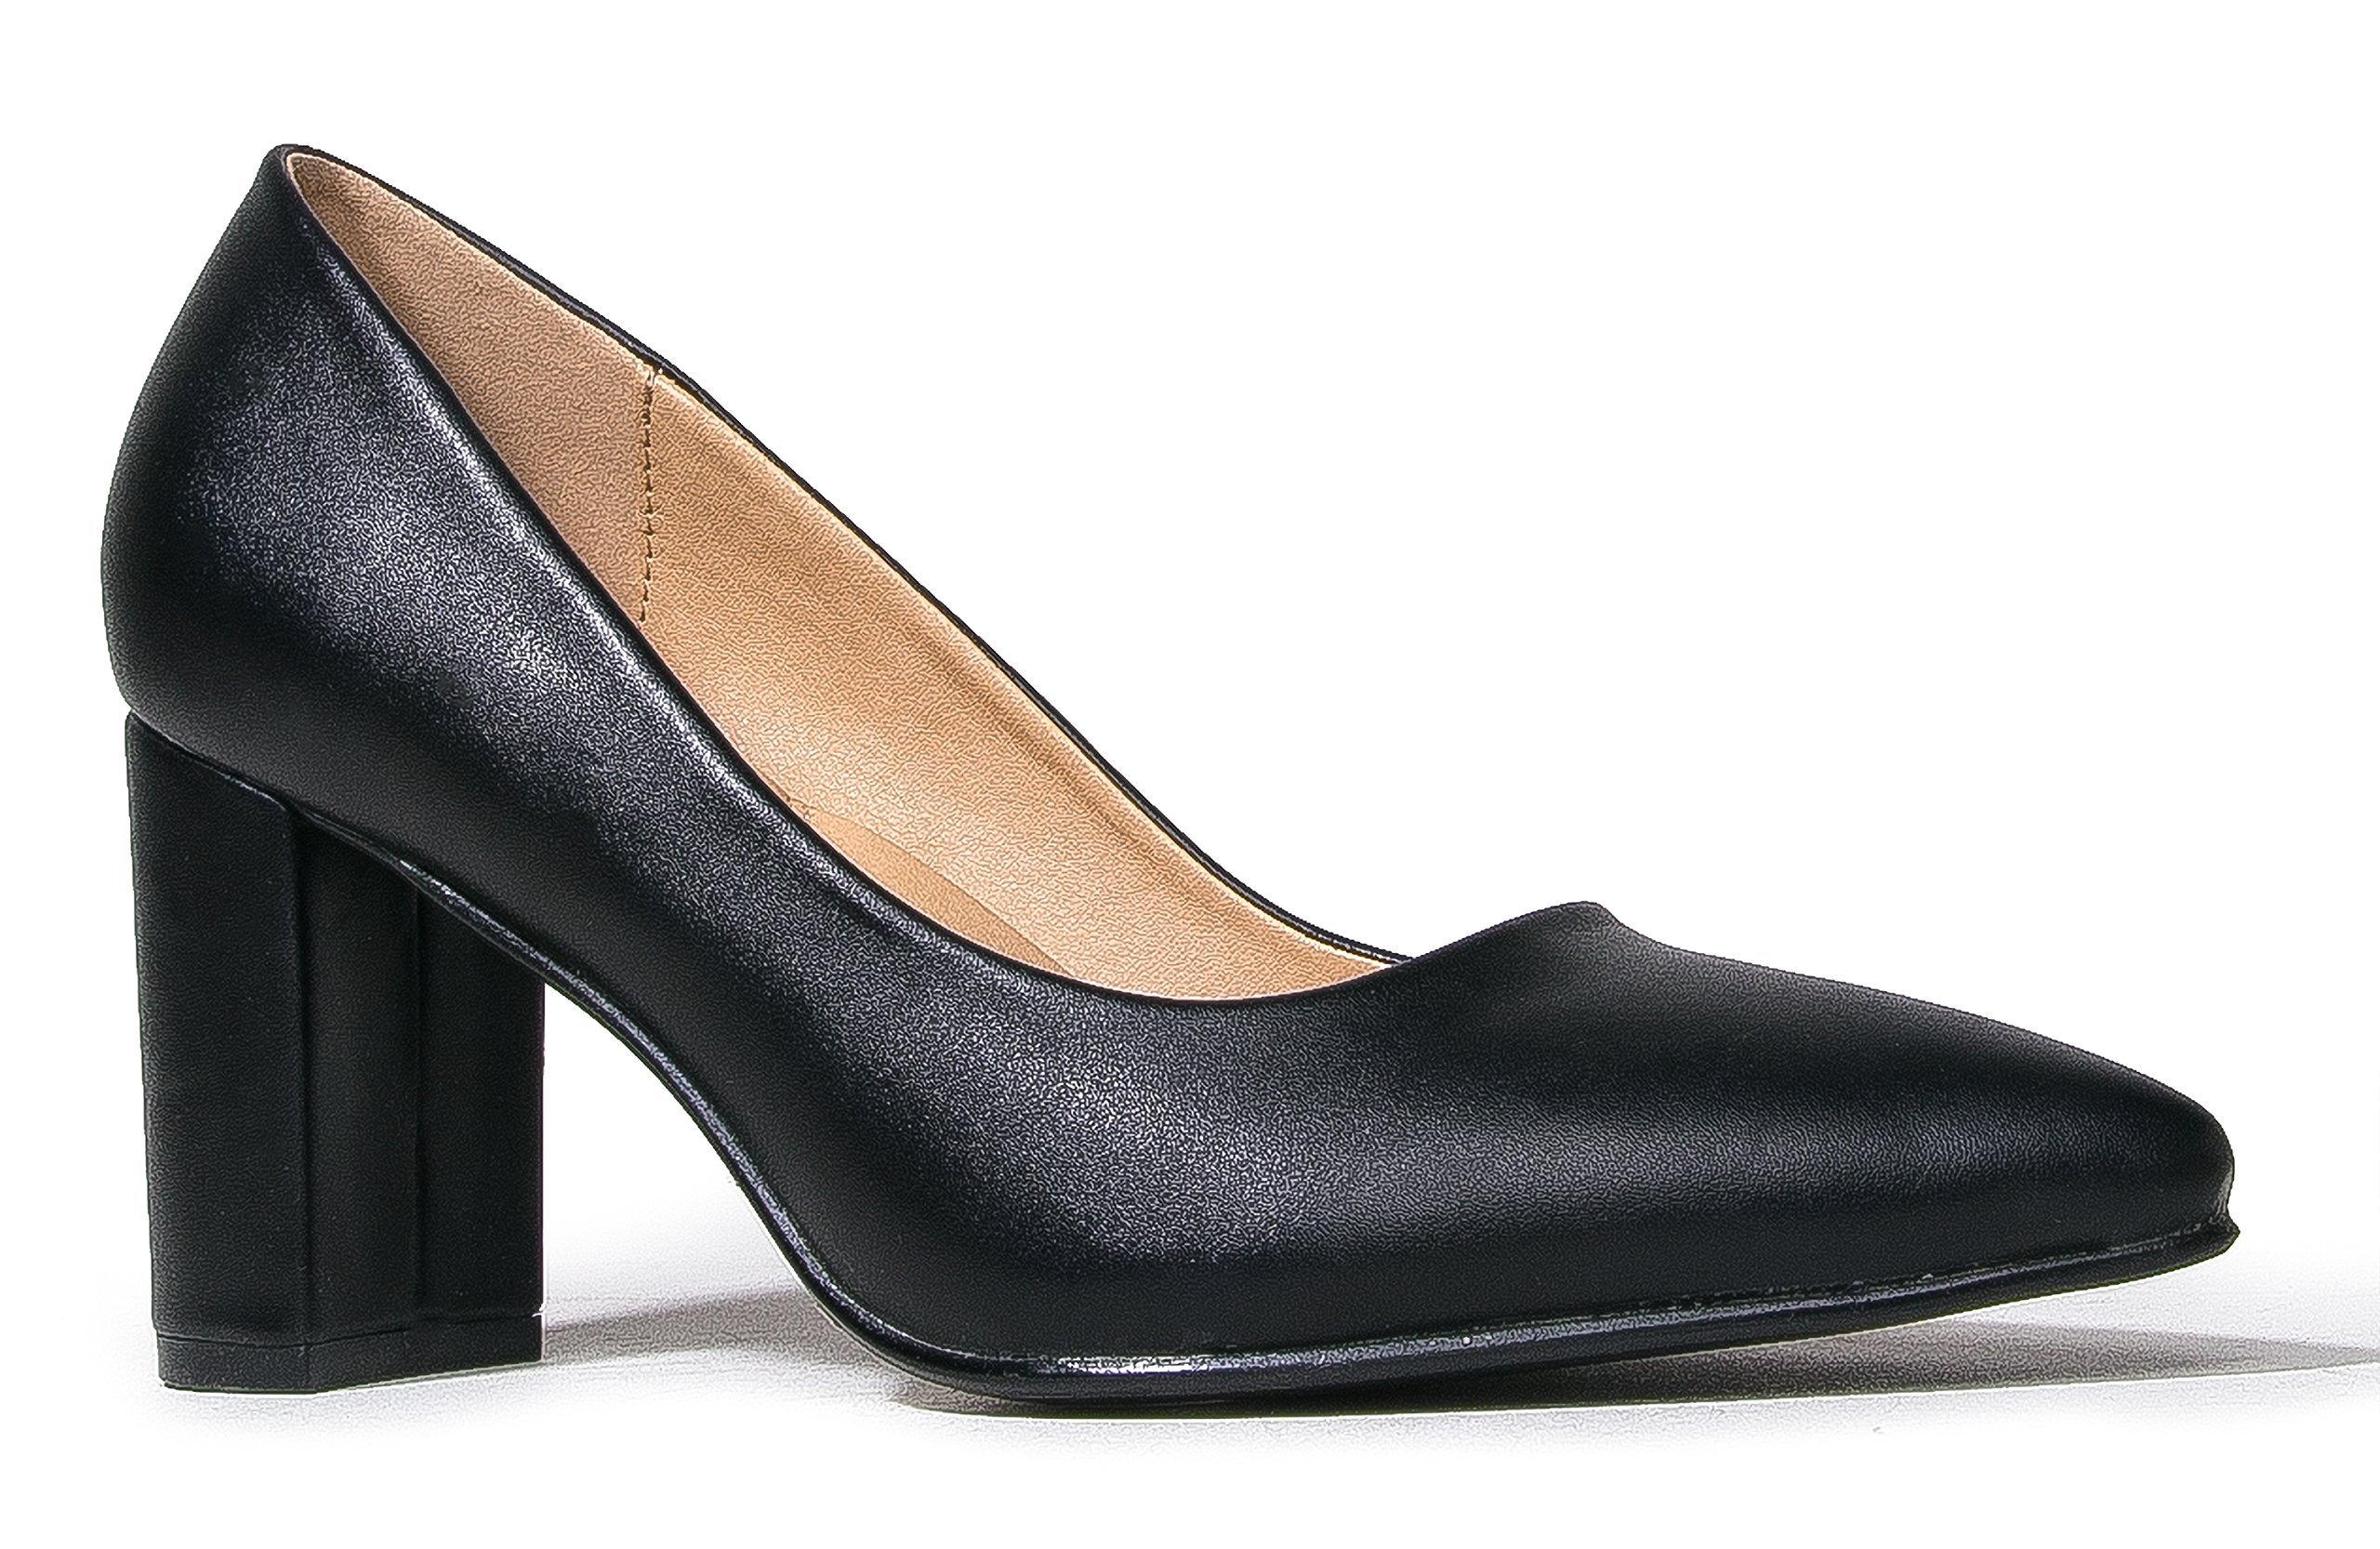 J. Adams Jolie Pumps, Black PU, 10 B(M) US